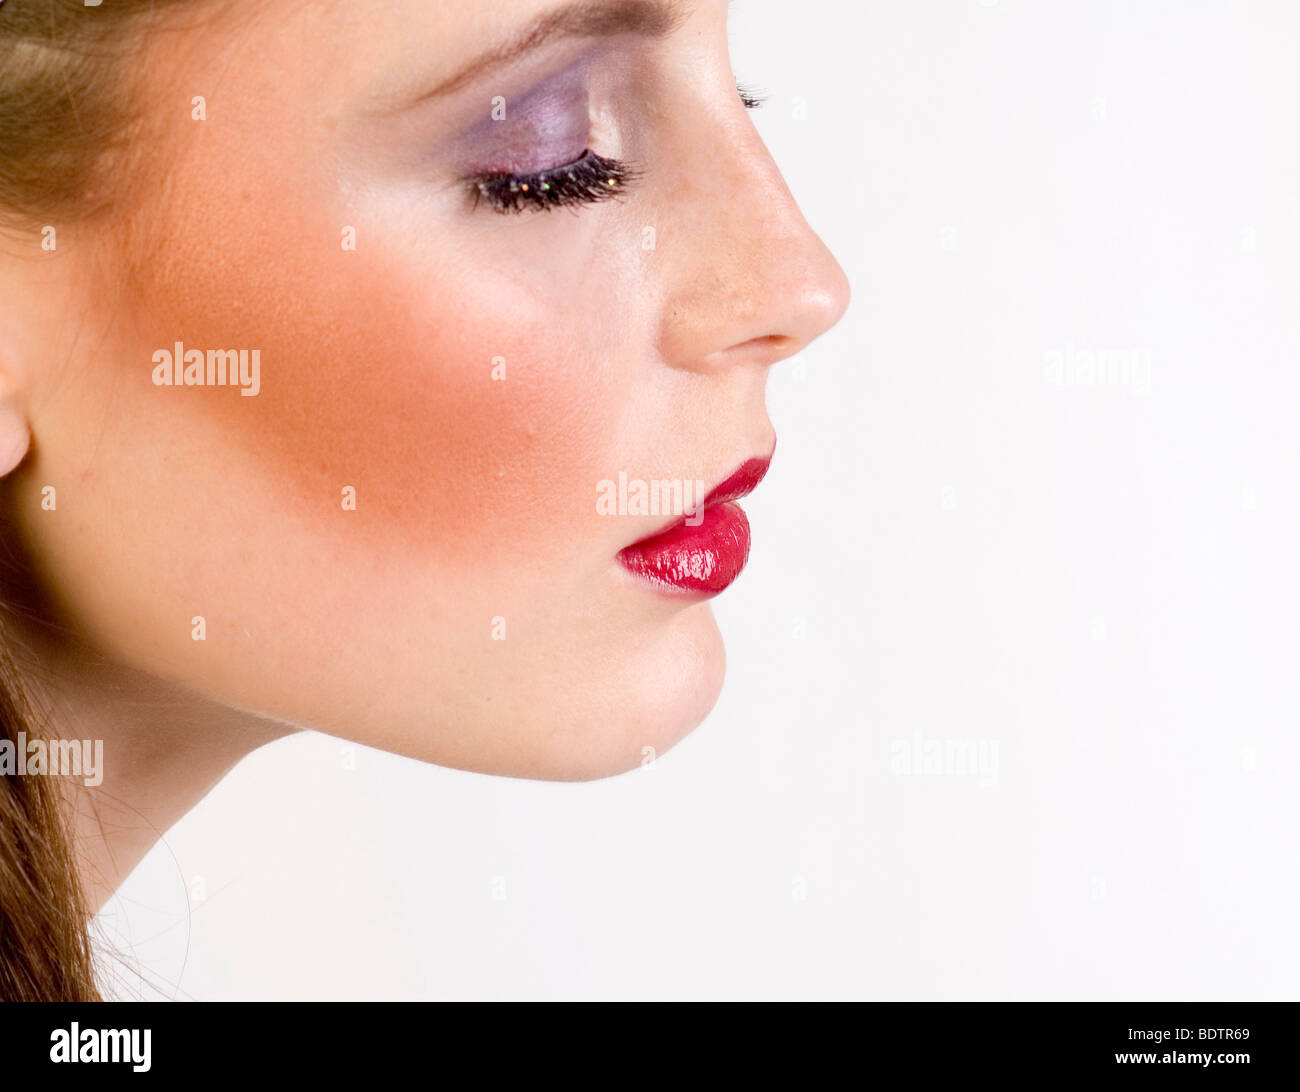 young woman, with artificial eyelid - Stock Image